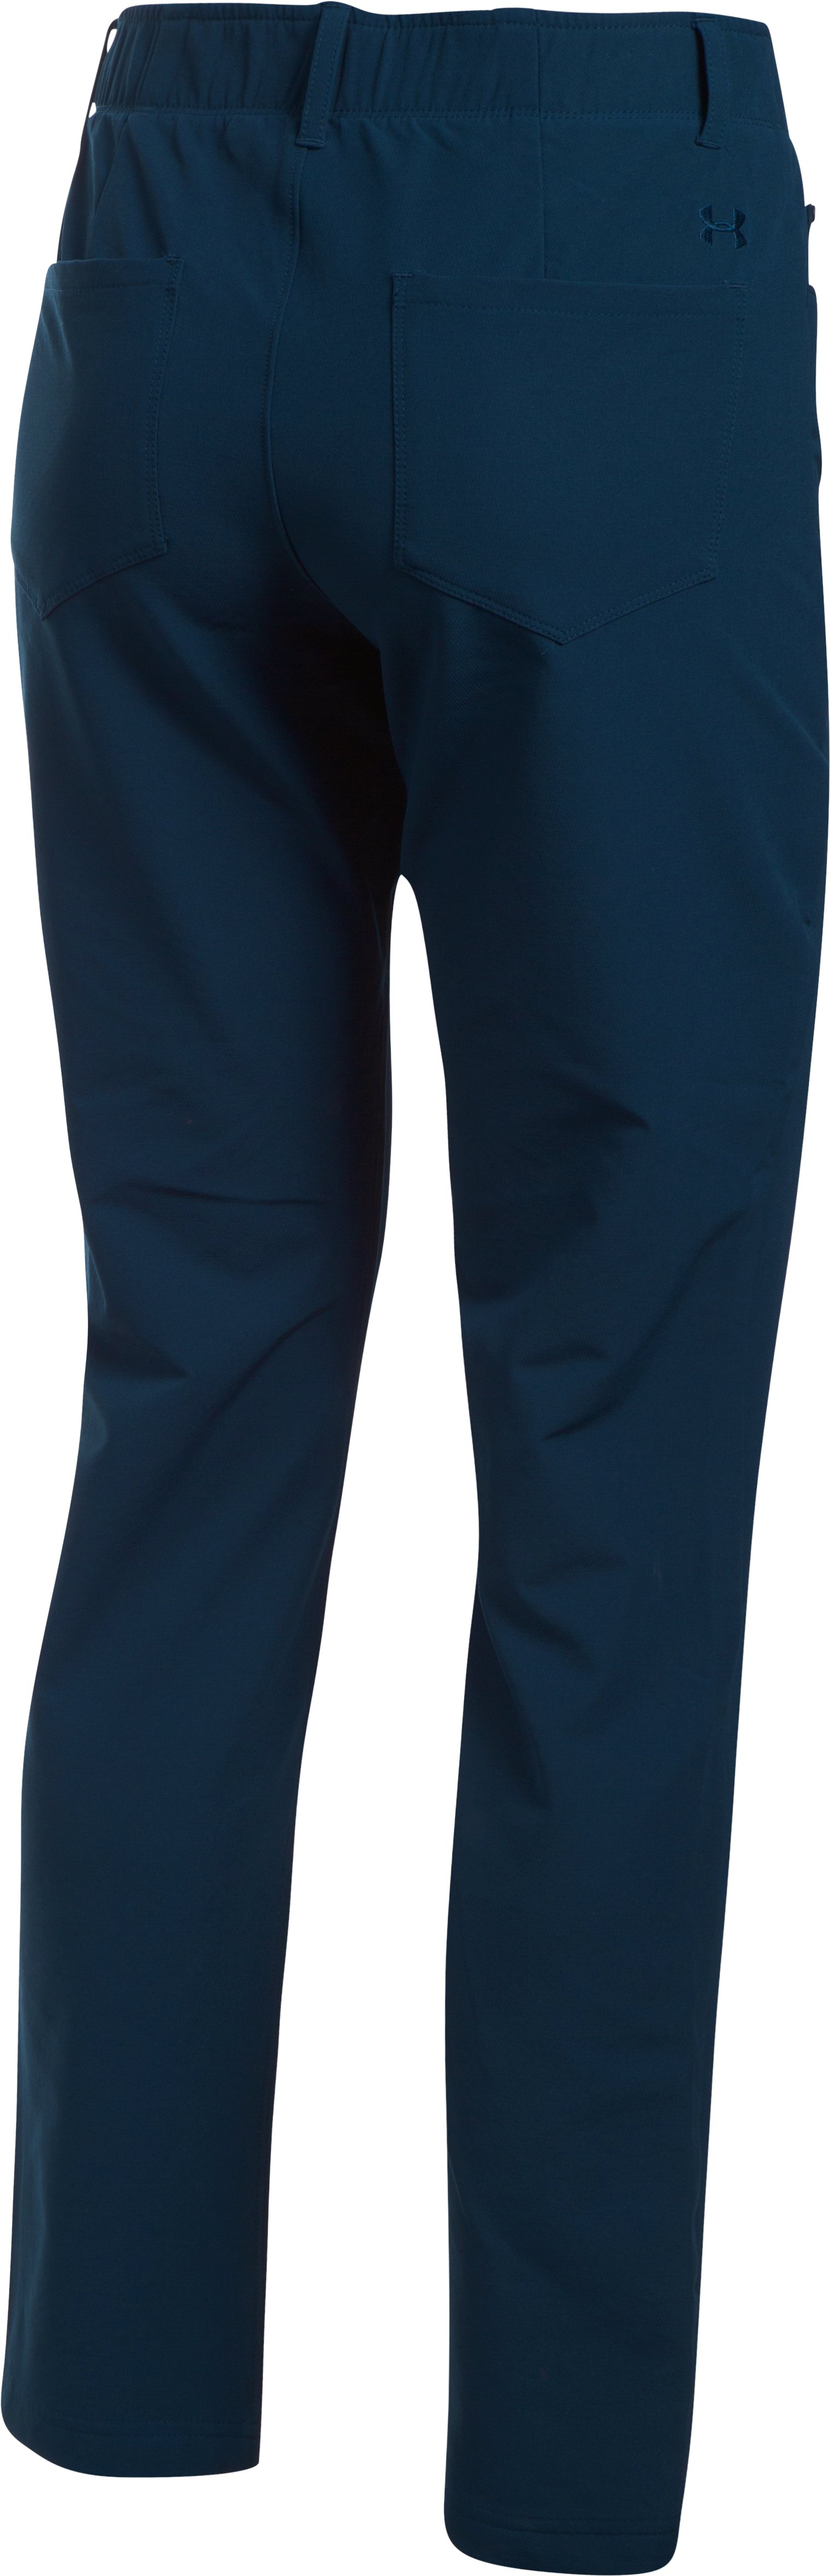 Women's ColdGear® Infrared Links Pant, Academy, undefined